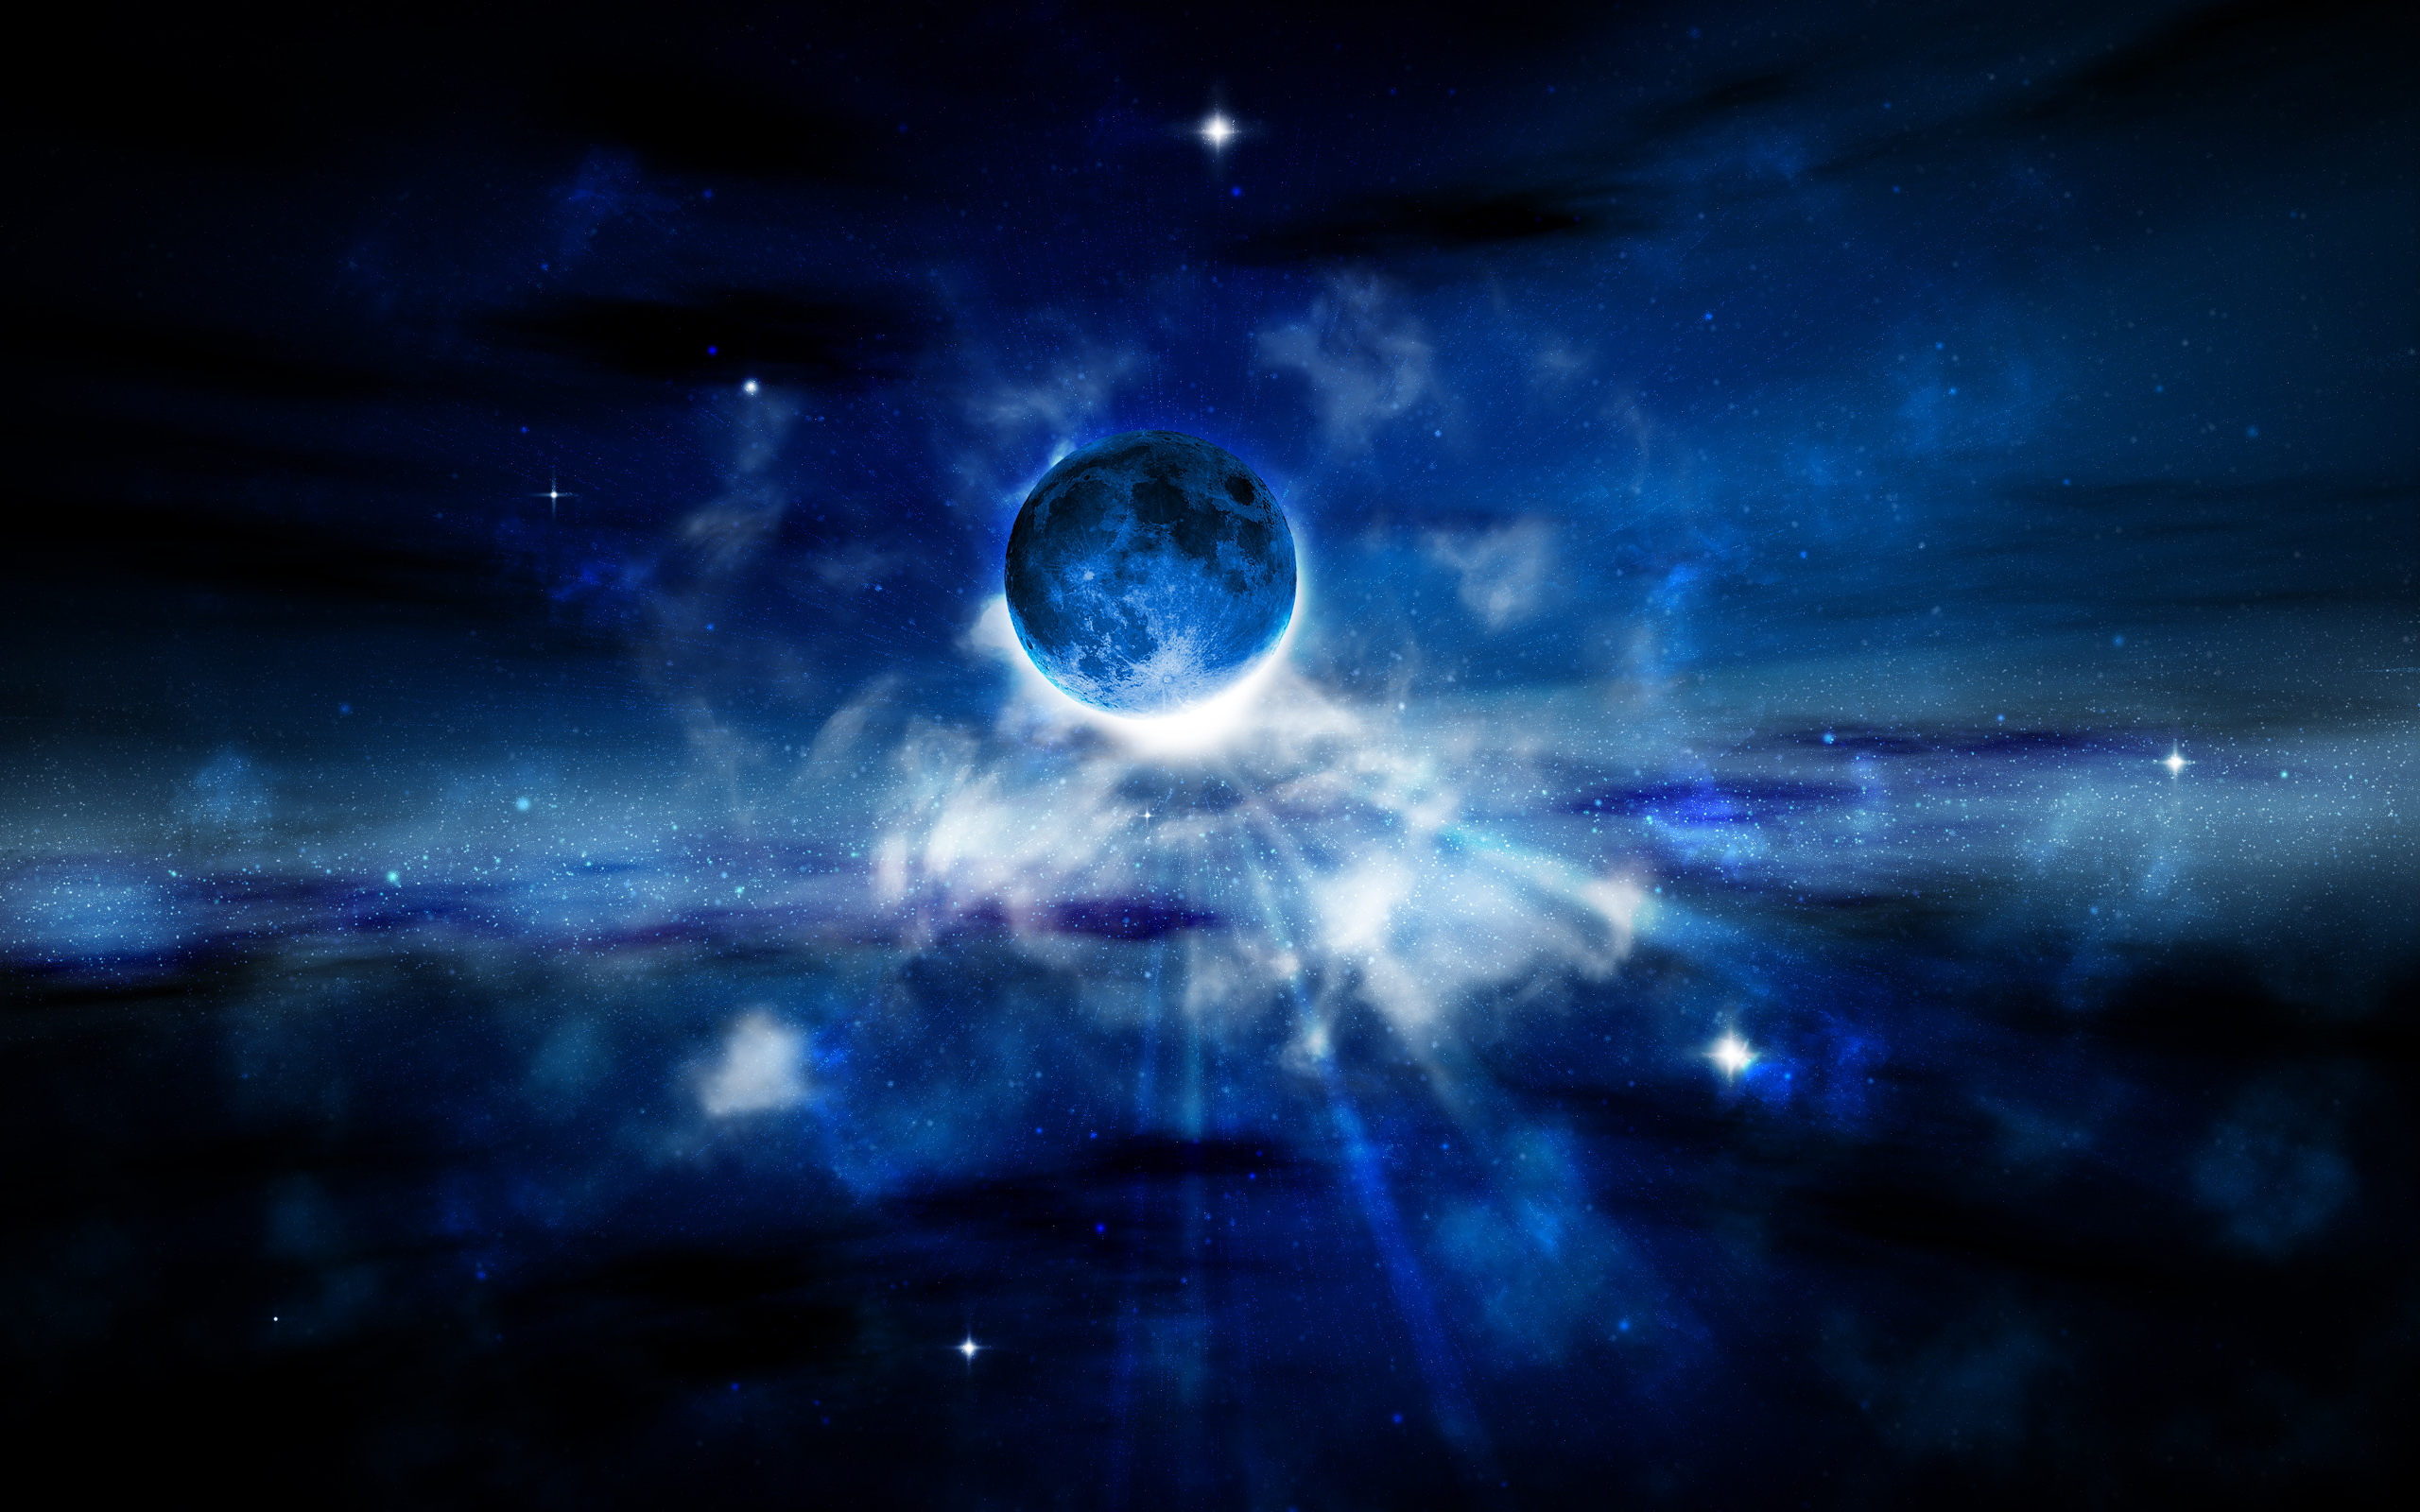 Pictures hd wallpapers 1440x900 space 3d fantasy blue space hd desktop 2560x1600